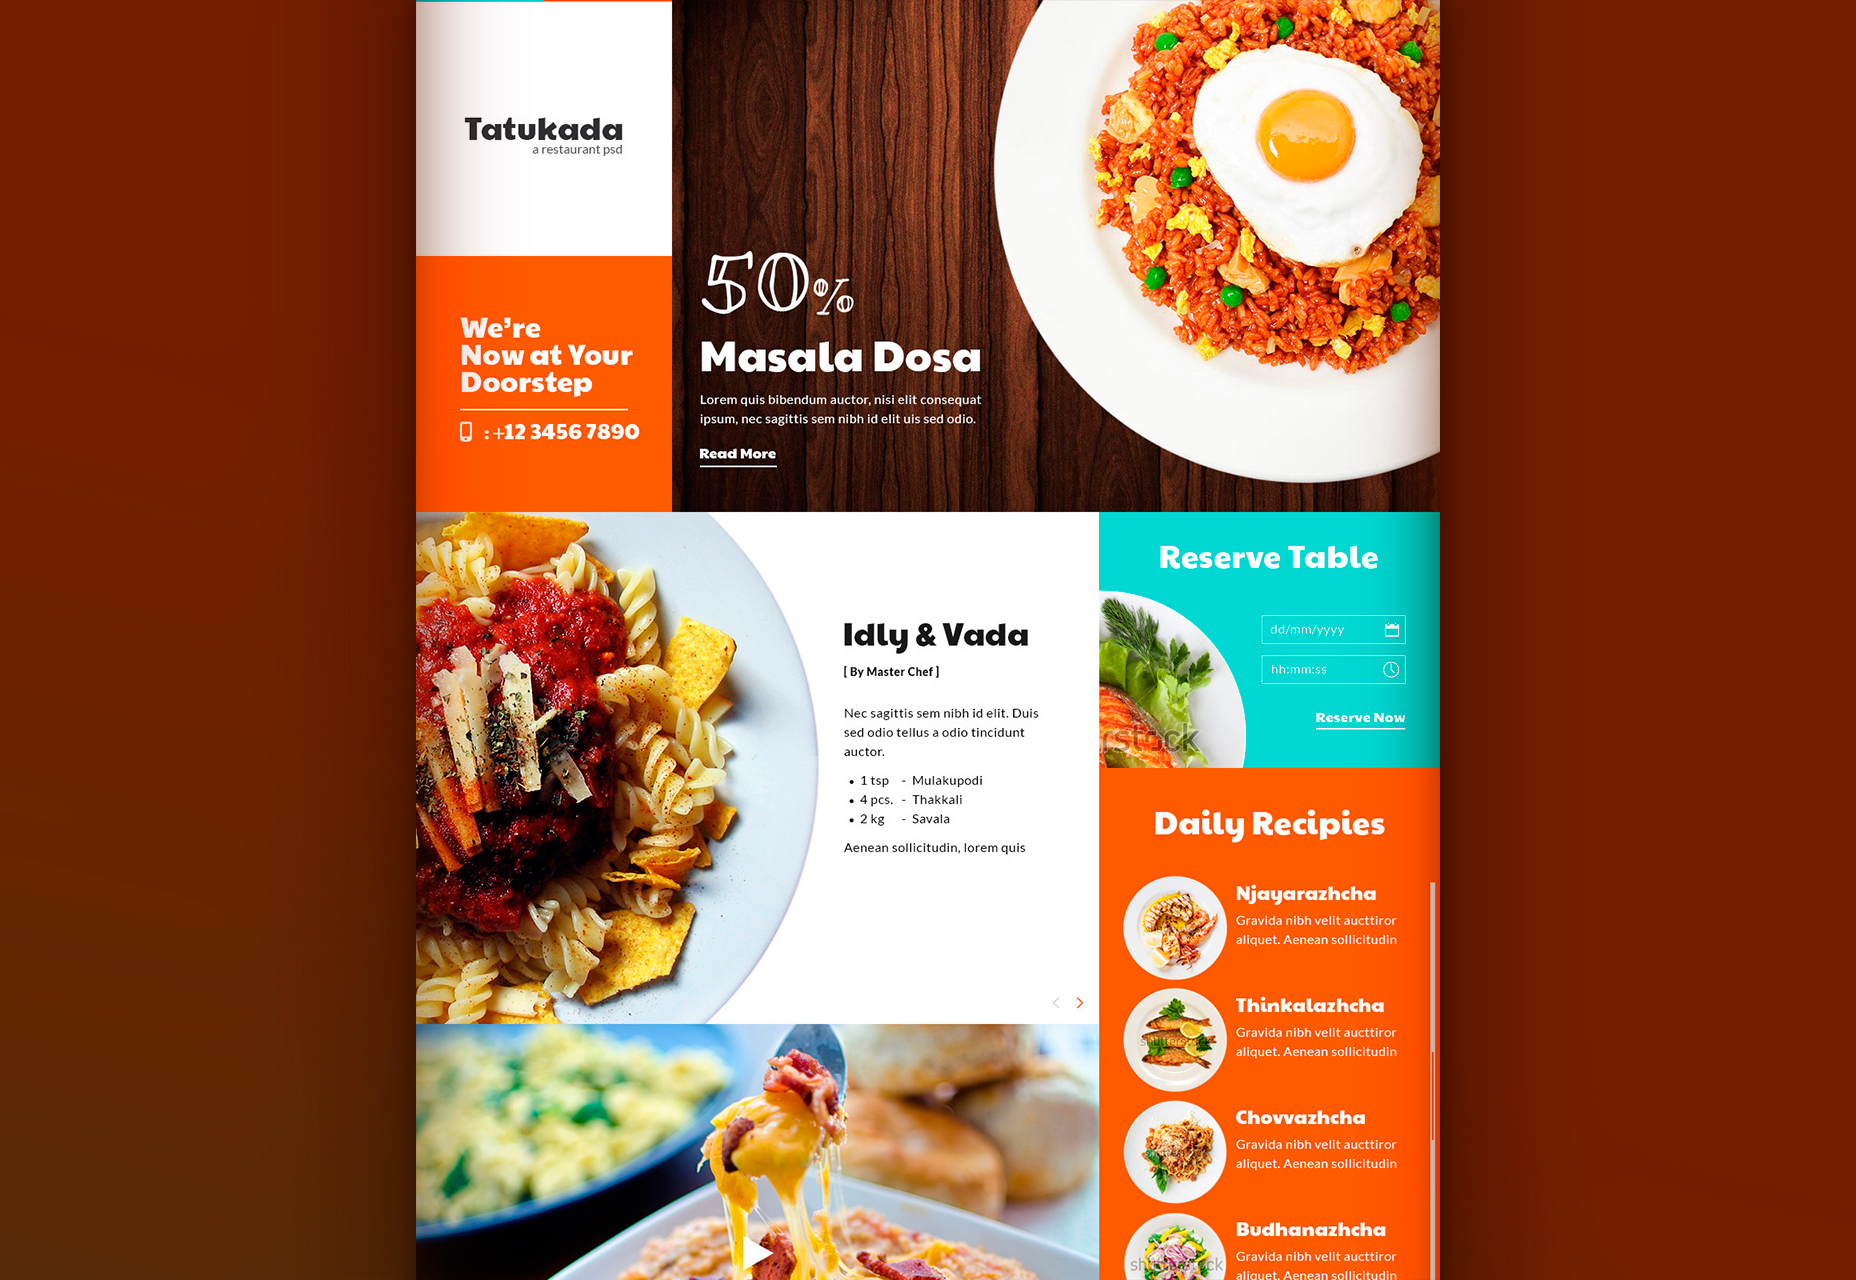 Tatukada: Flat Full-screen Restaurant Web Template